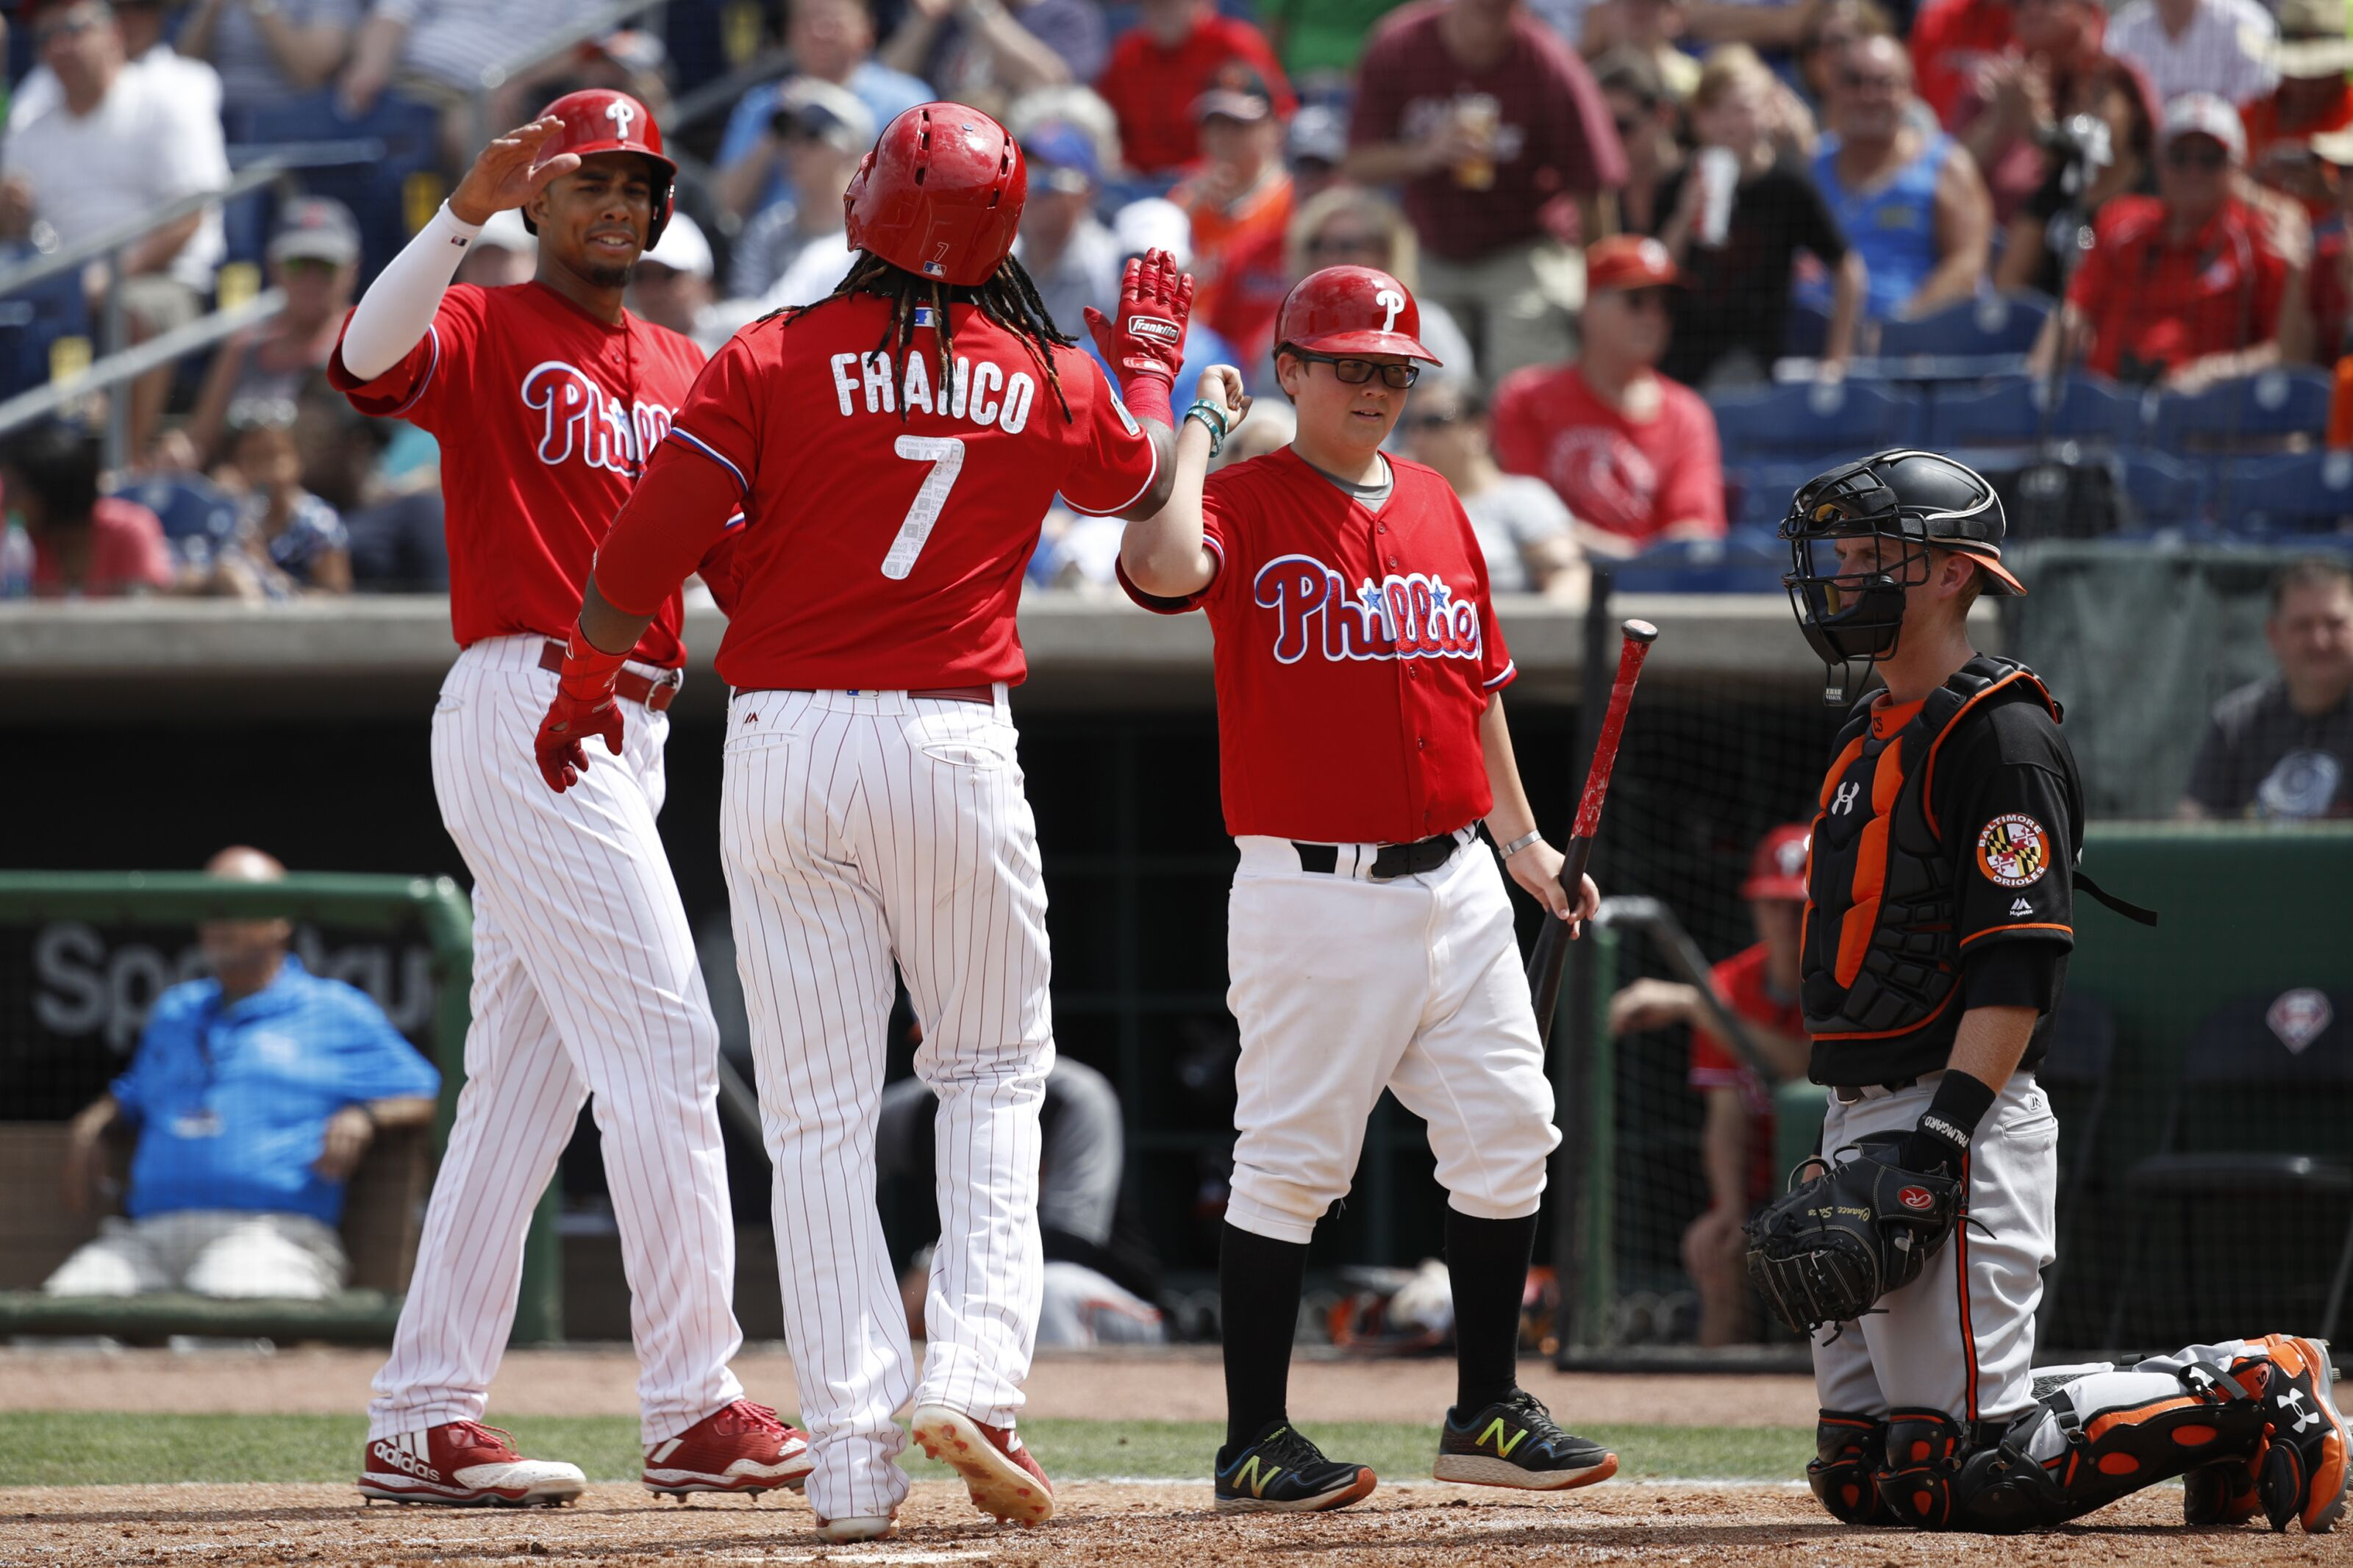 Phillies: How is this year's team different than last?